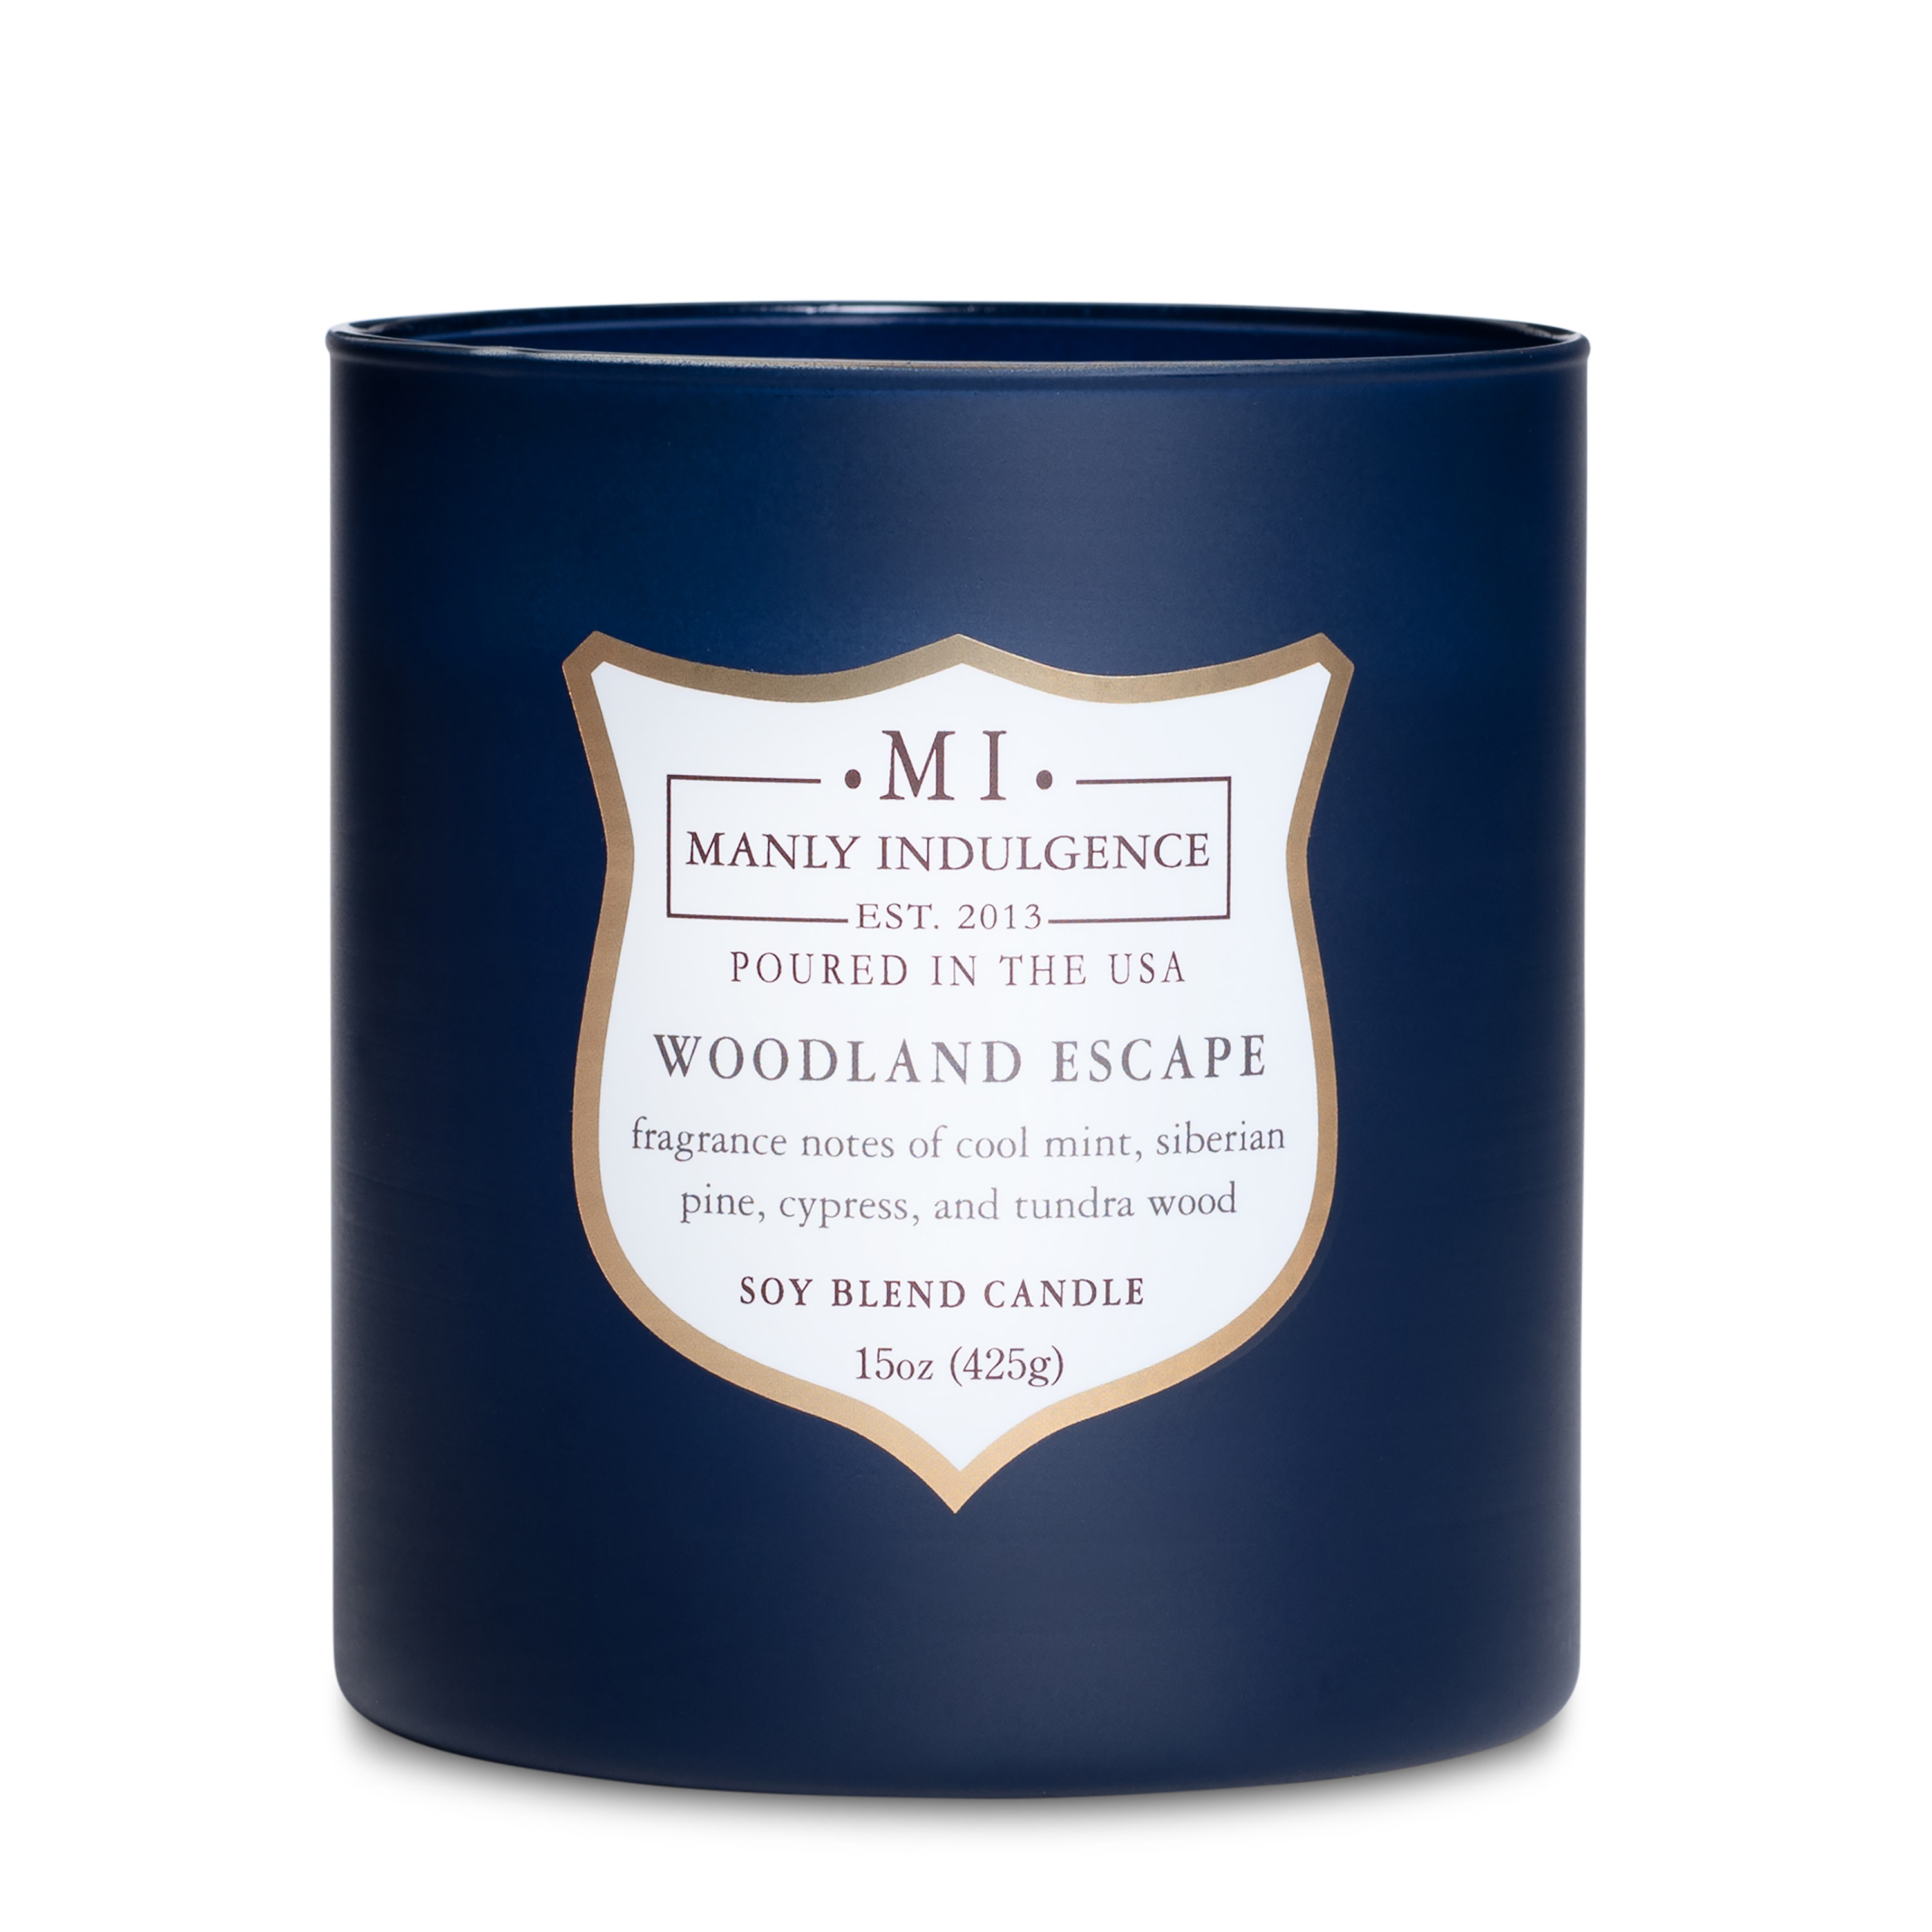 Manly Indulgence Woodland Escape 15 Oz Scented Candle Wooden Wick Walmart Com Walmart Com